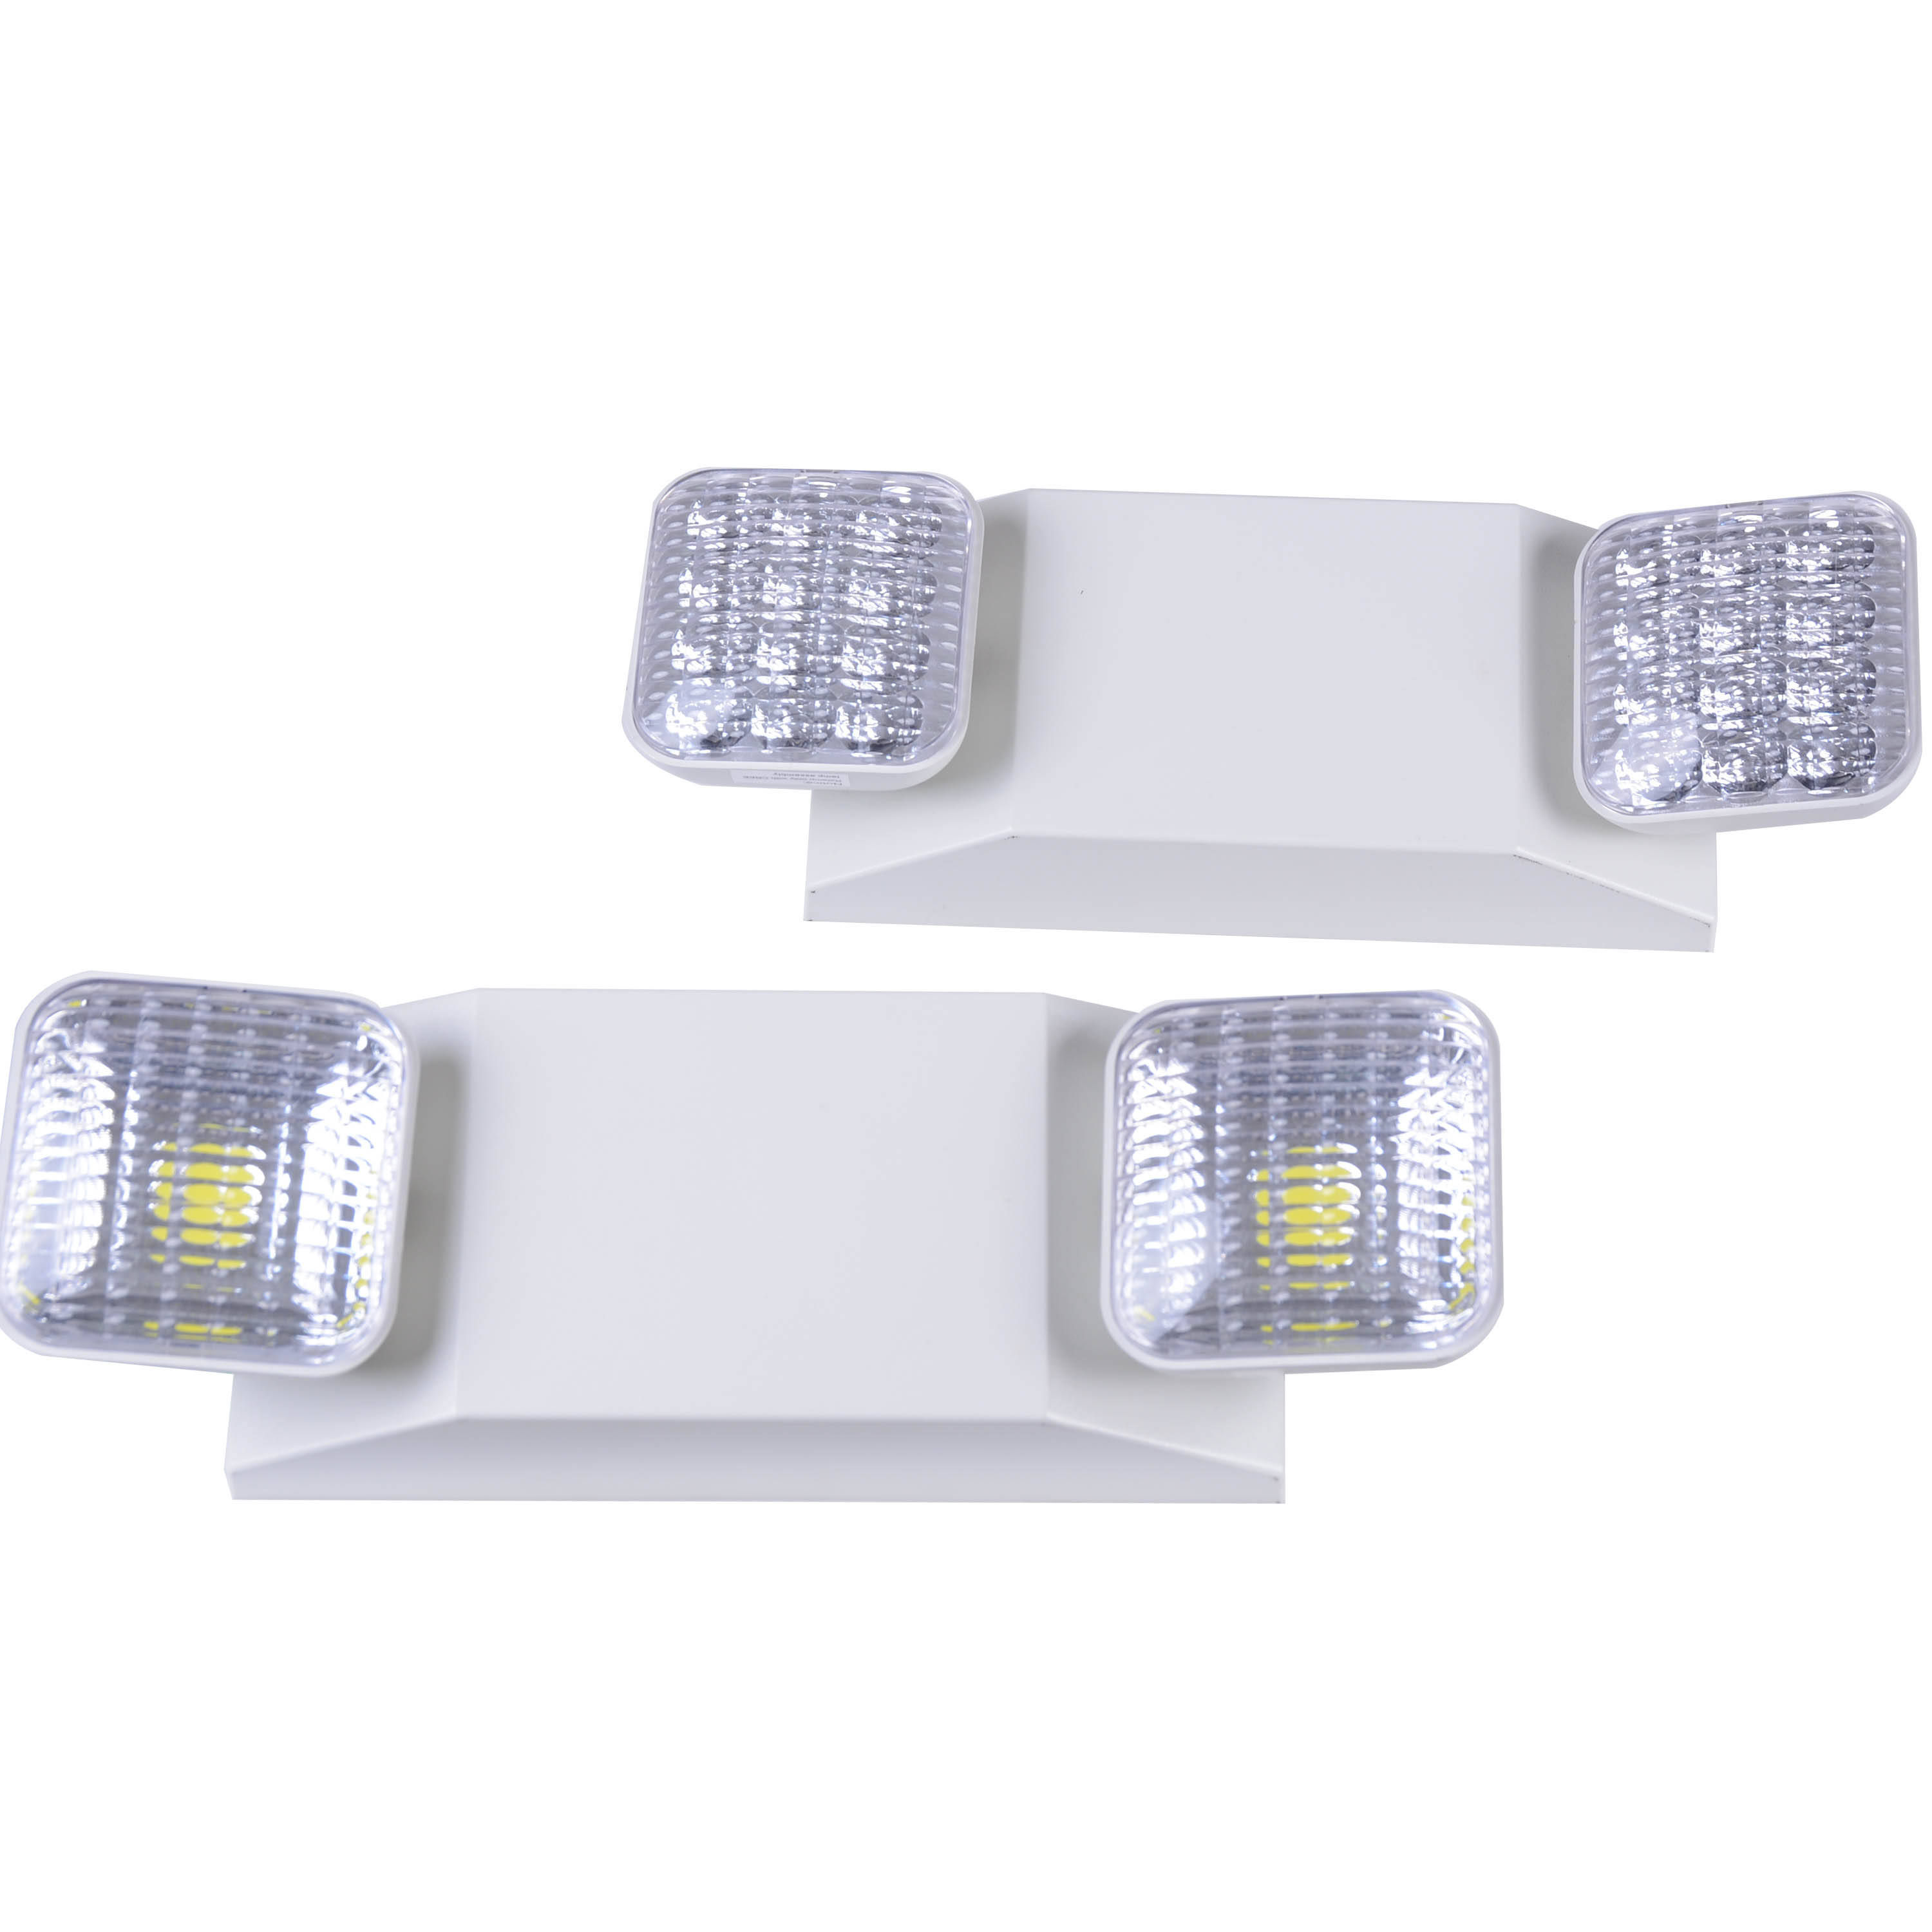 UL cUL Listed Emergency LED Light dual head emergency light